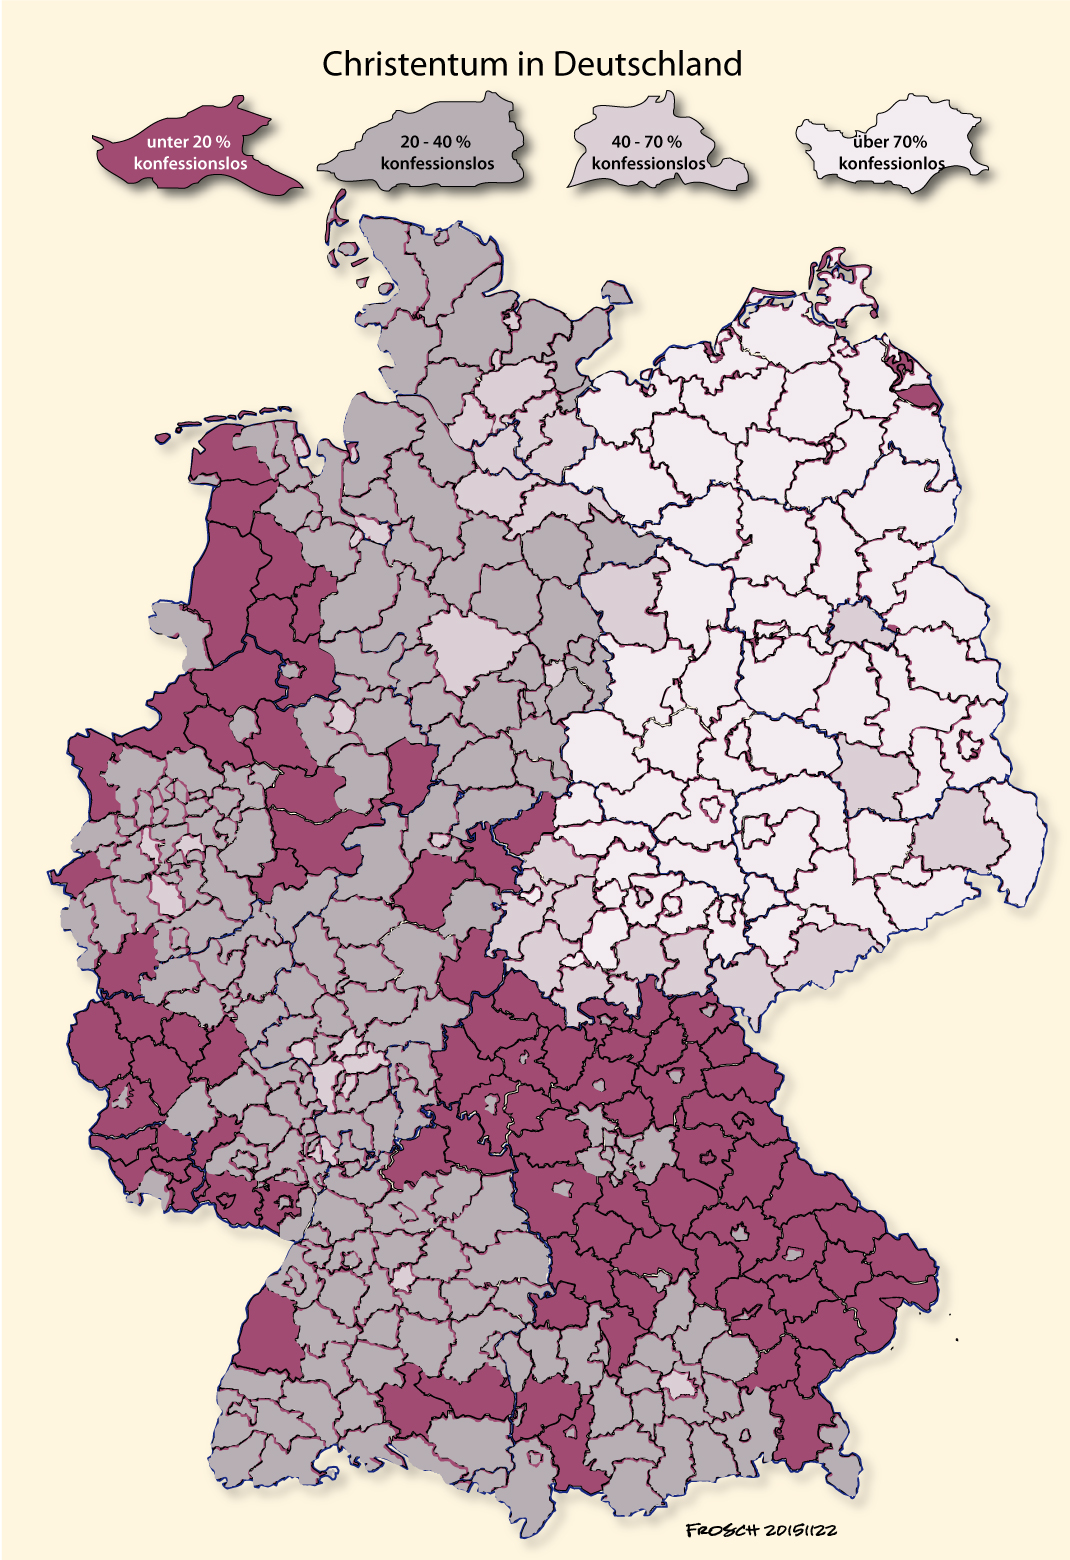 Christentum in Deutschland